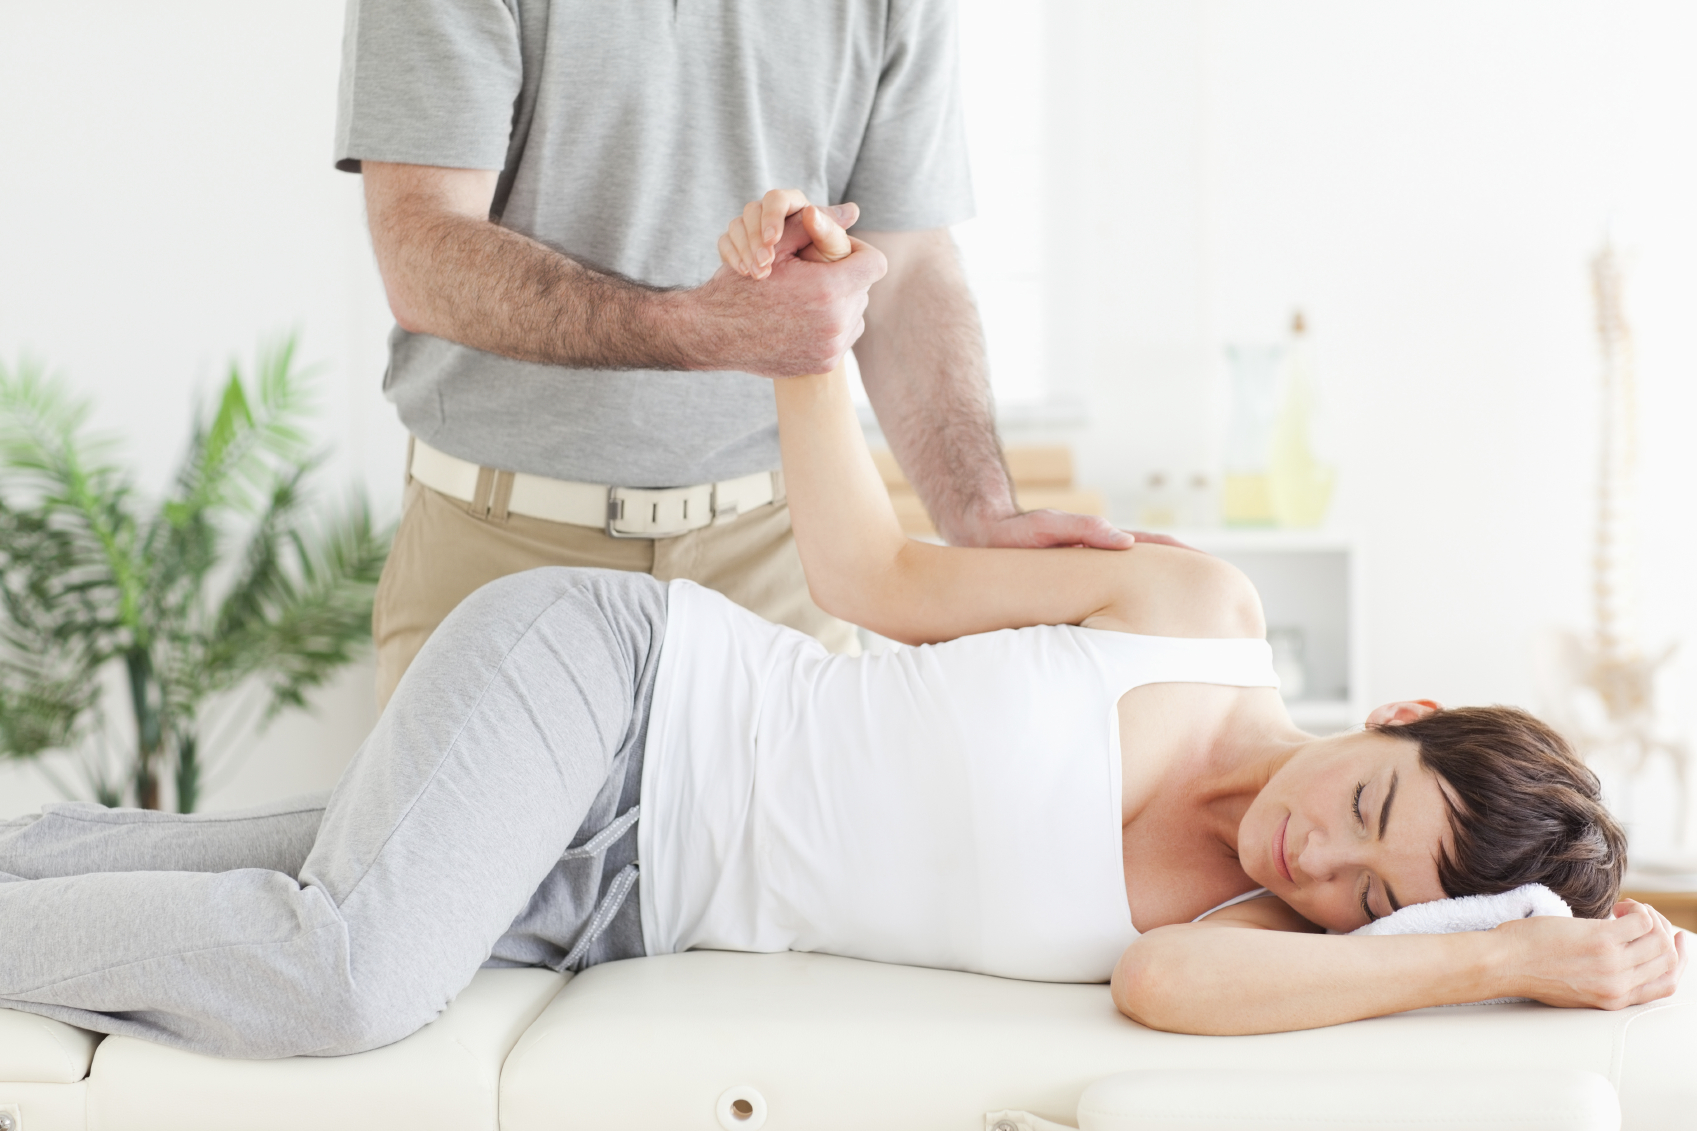 Advantages of Chiropractor